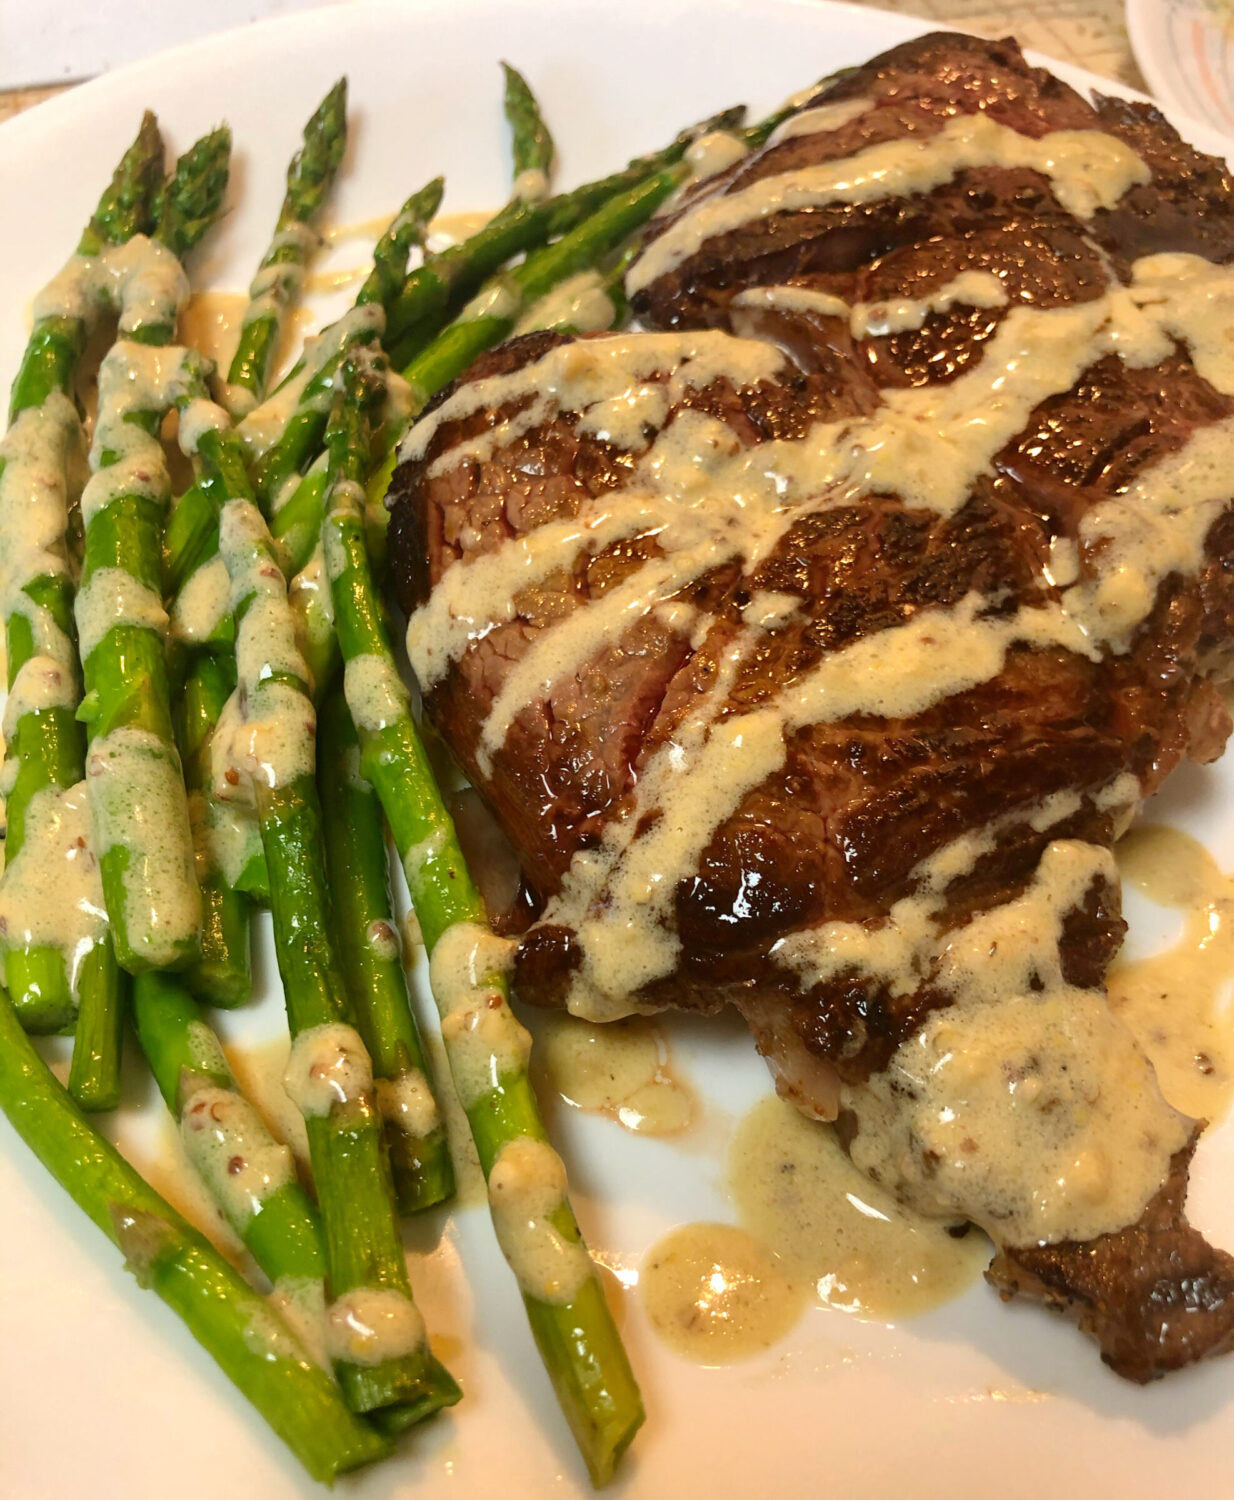 Rich Buttery Sauce with Beef and Asparagus